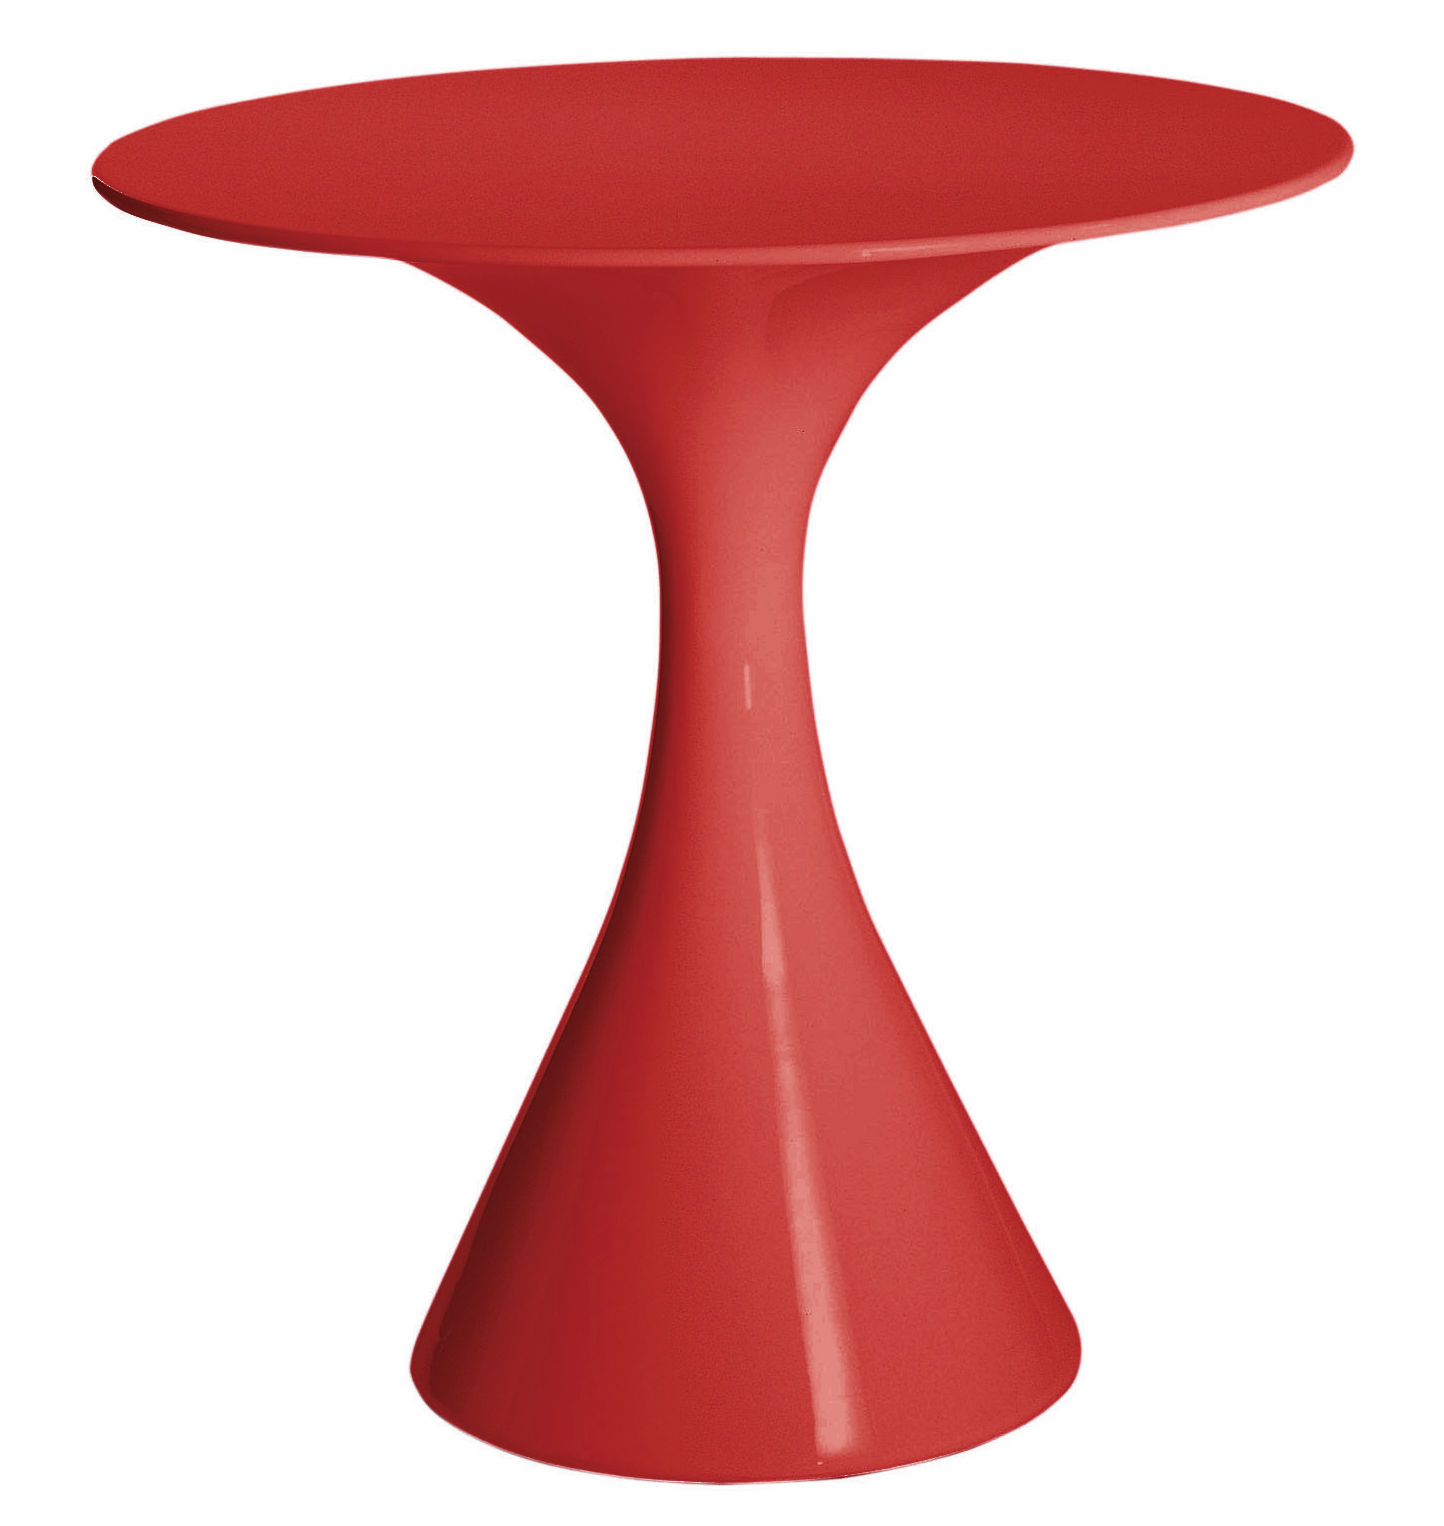 Outdoor - Garden Tables - Kissi Kissi Garden table by Driade - Red - Polythene